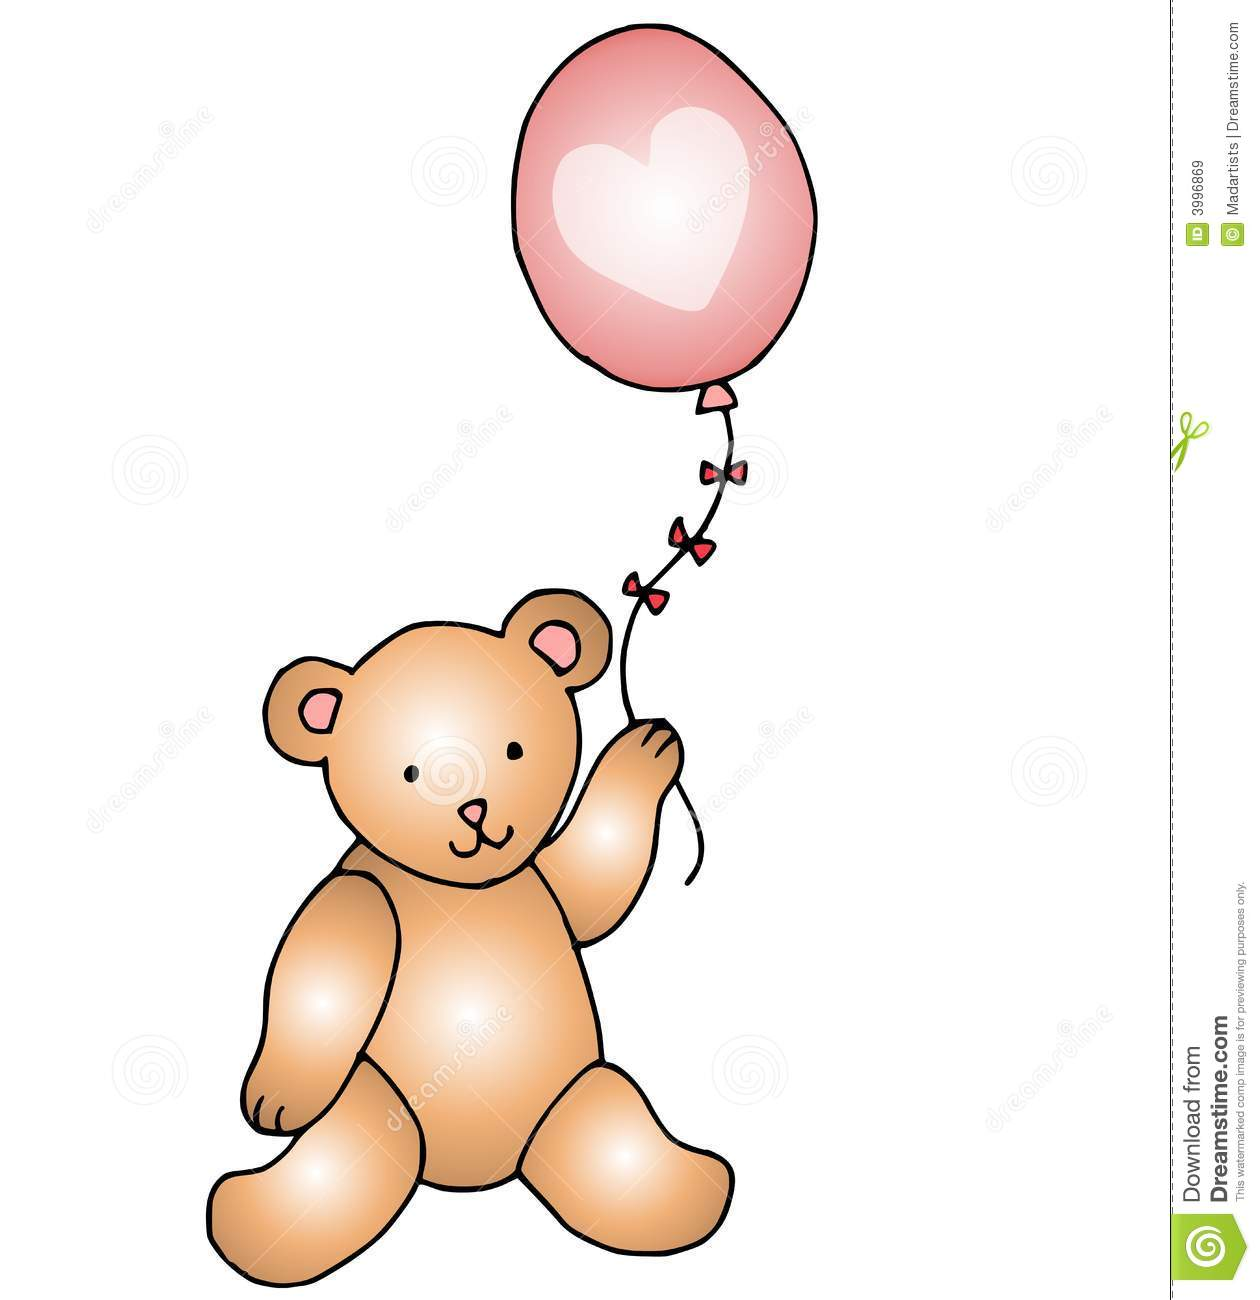 1260x1300 Teddy Bear Clipart Balloon Clipart